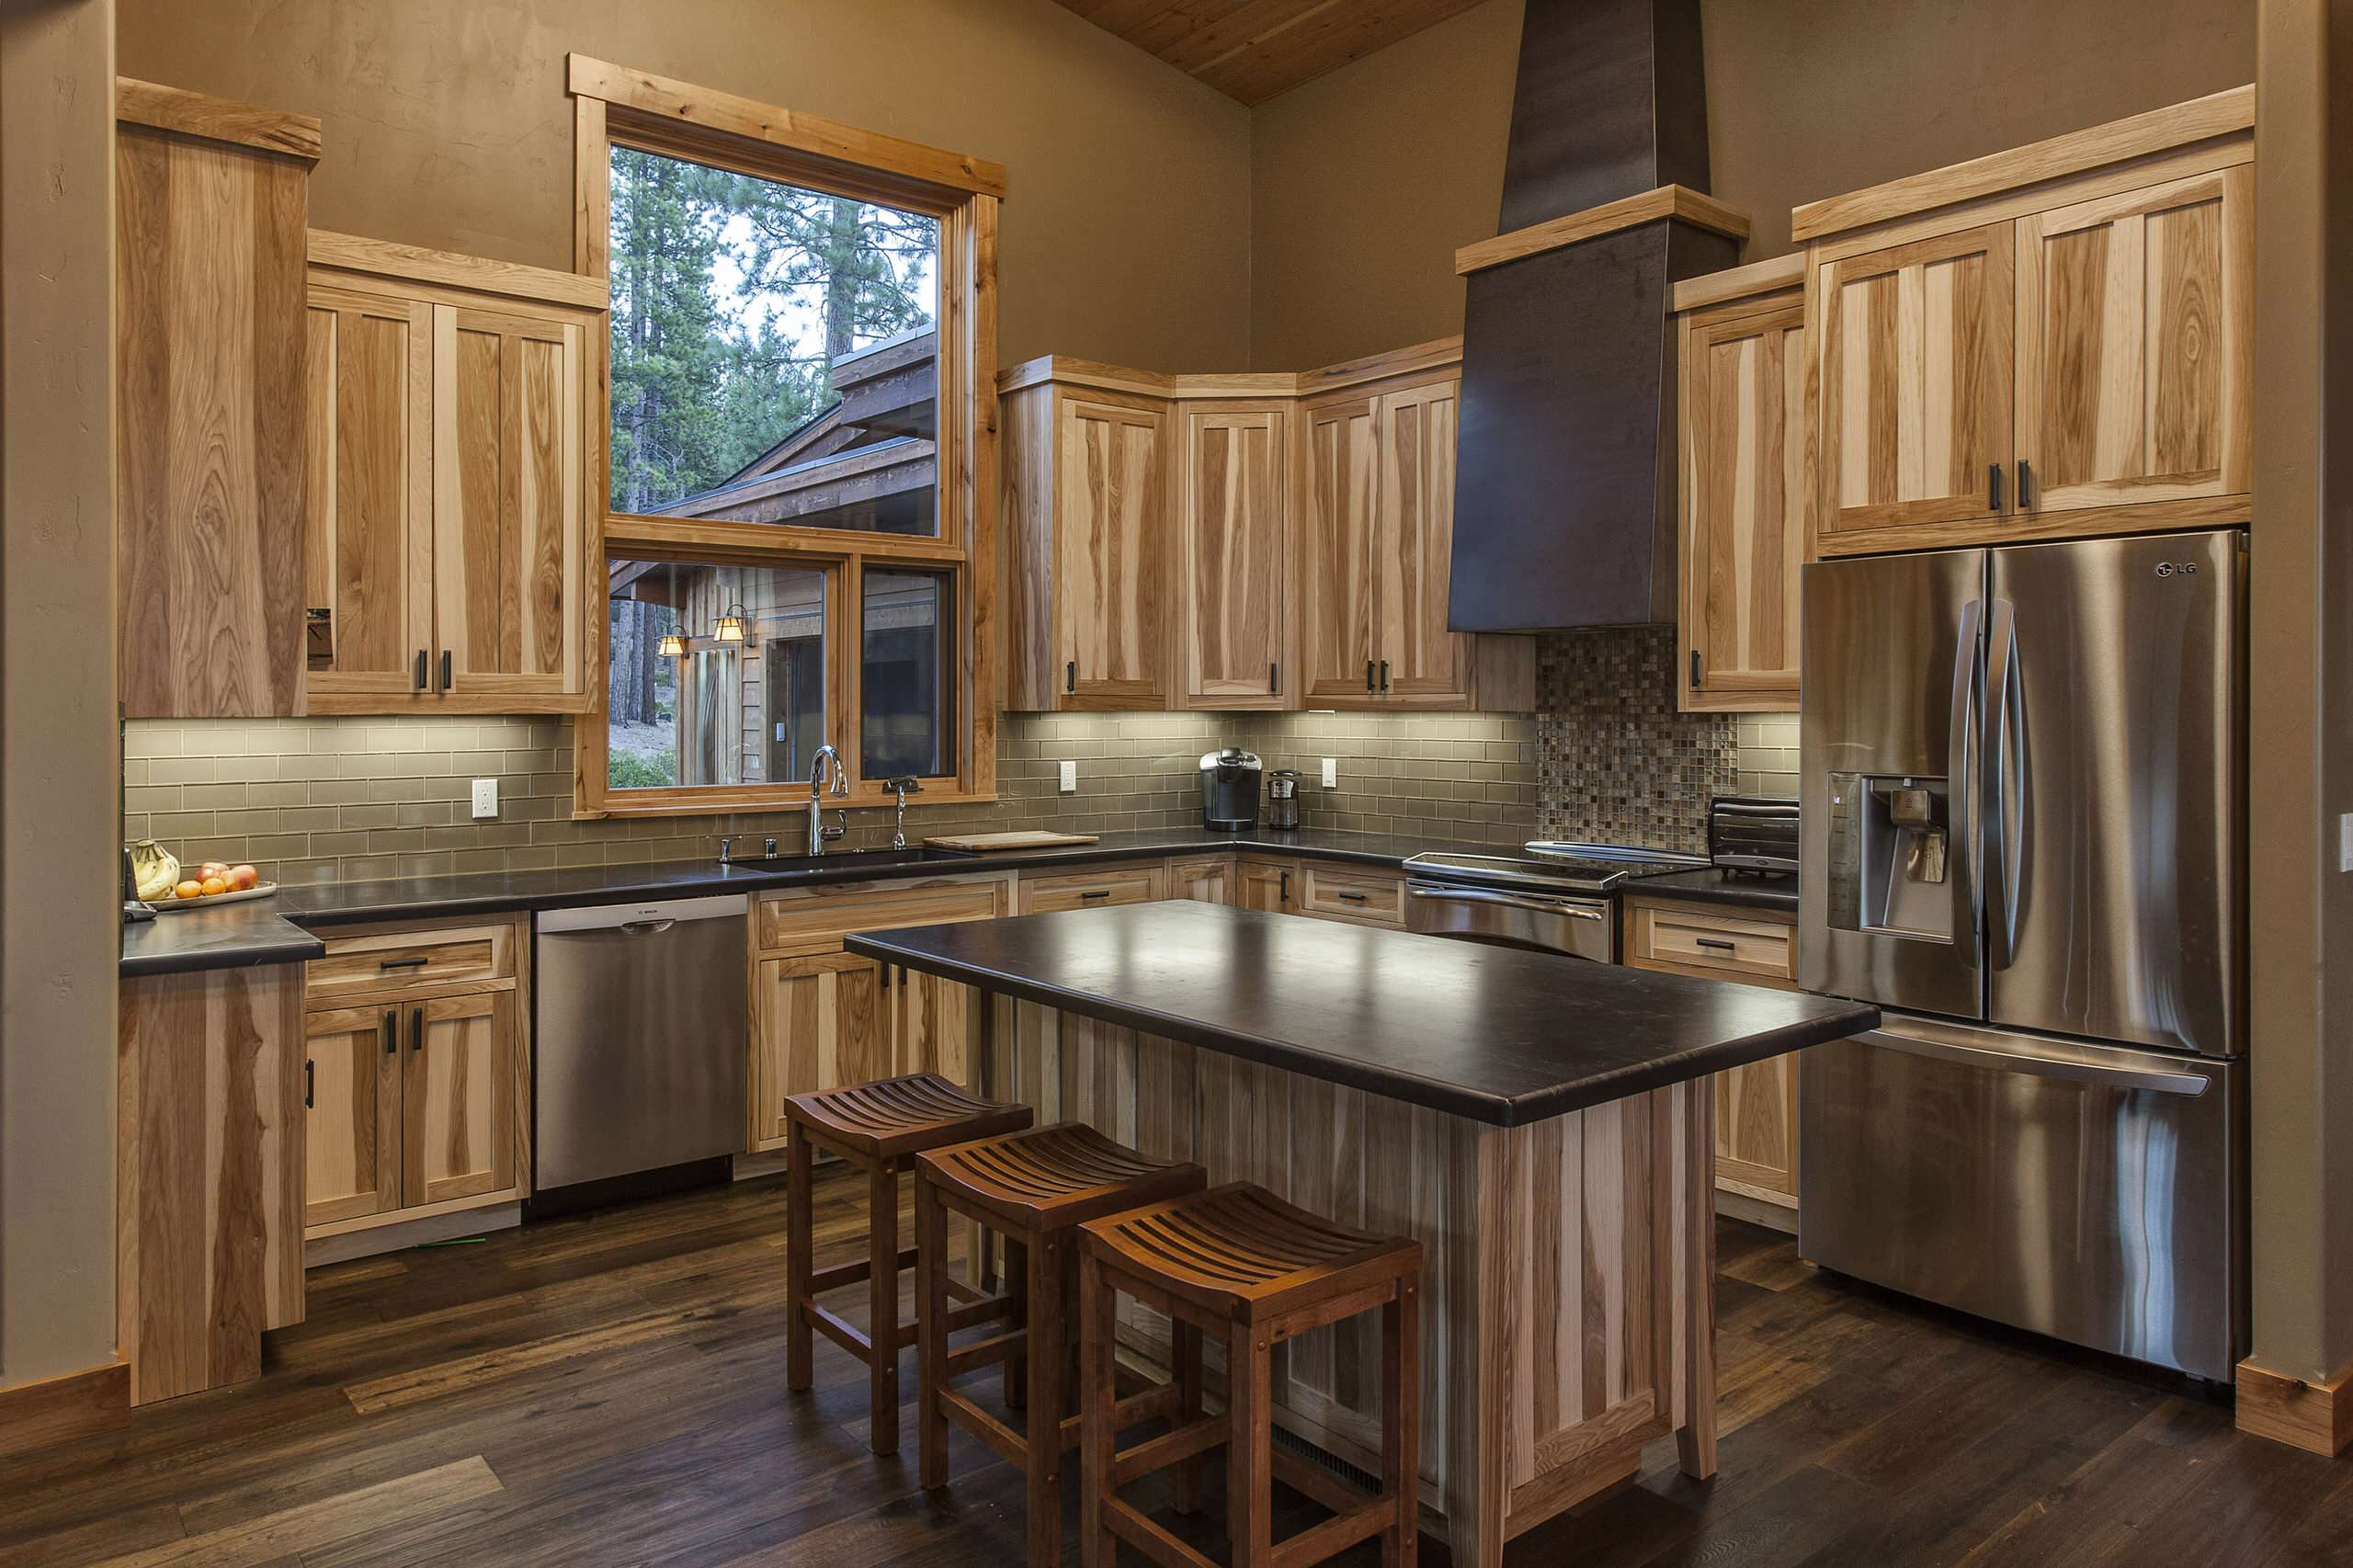 all-wood-kitchen-cabinets-hickory